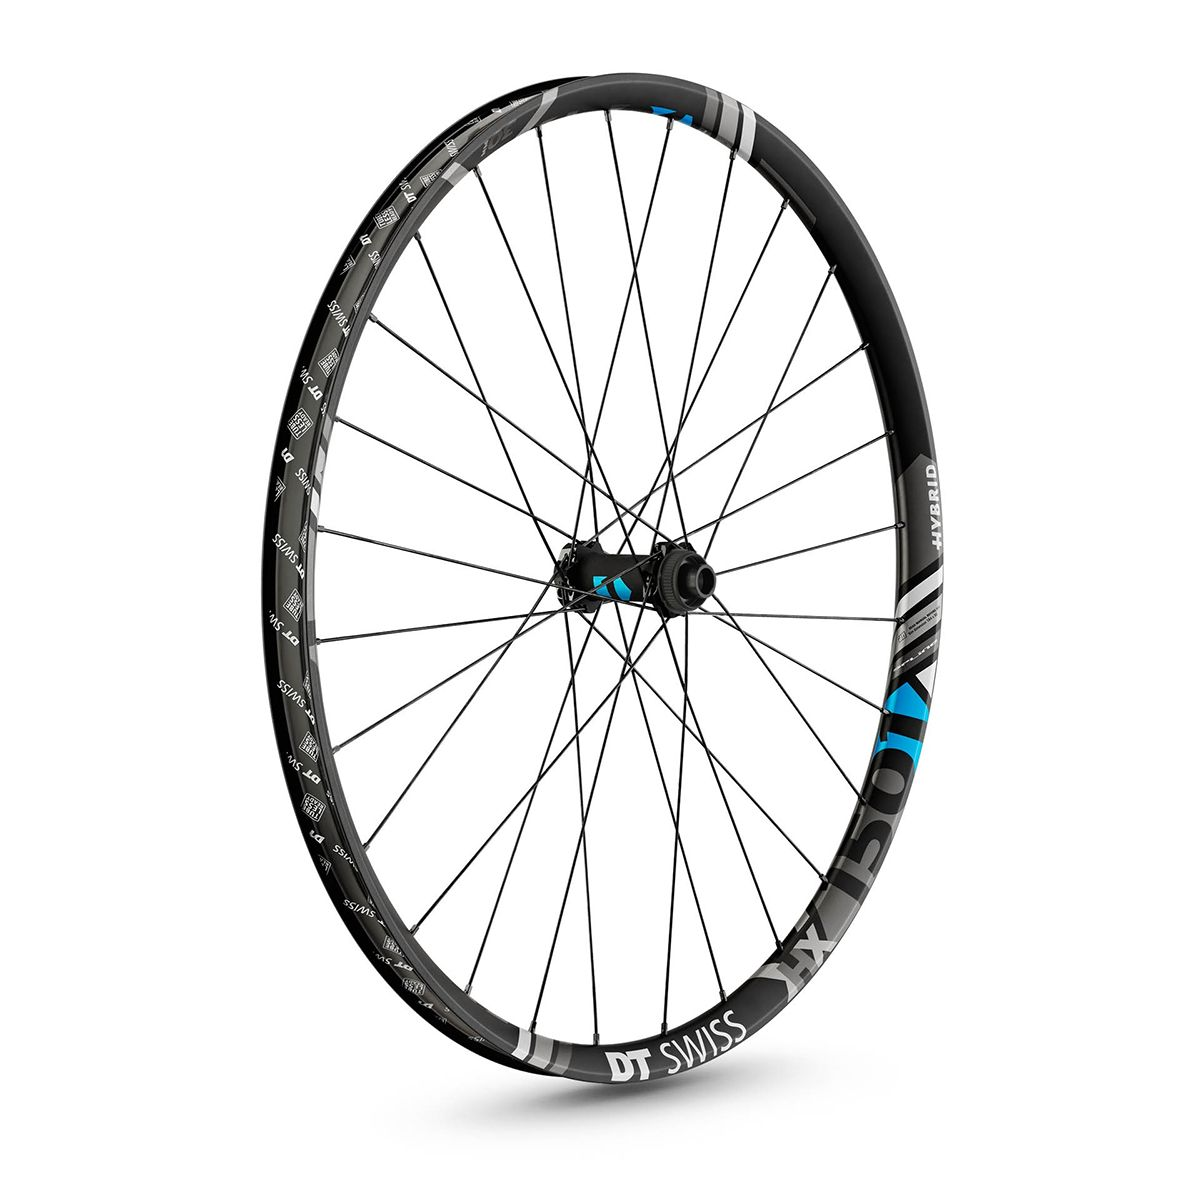 HX 1501 Spline® ONE 30 Disc BOOST E-MTB Vorderrad